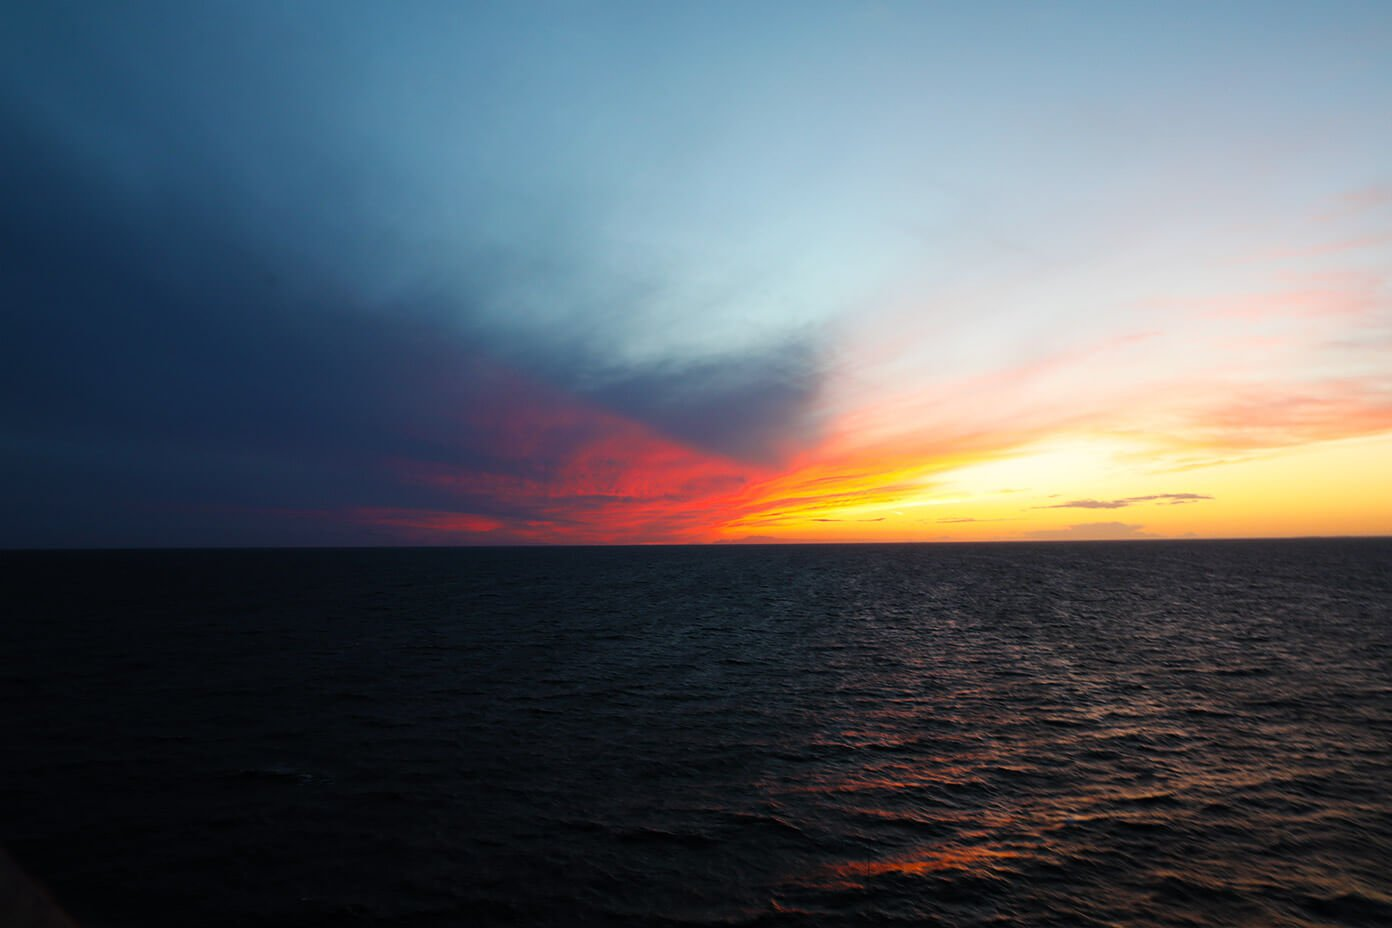 Viking Ocean Cruise Sunset